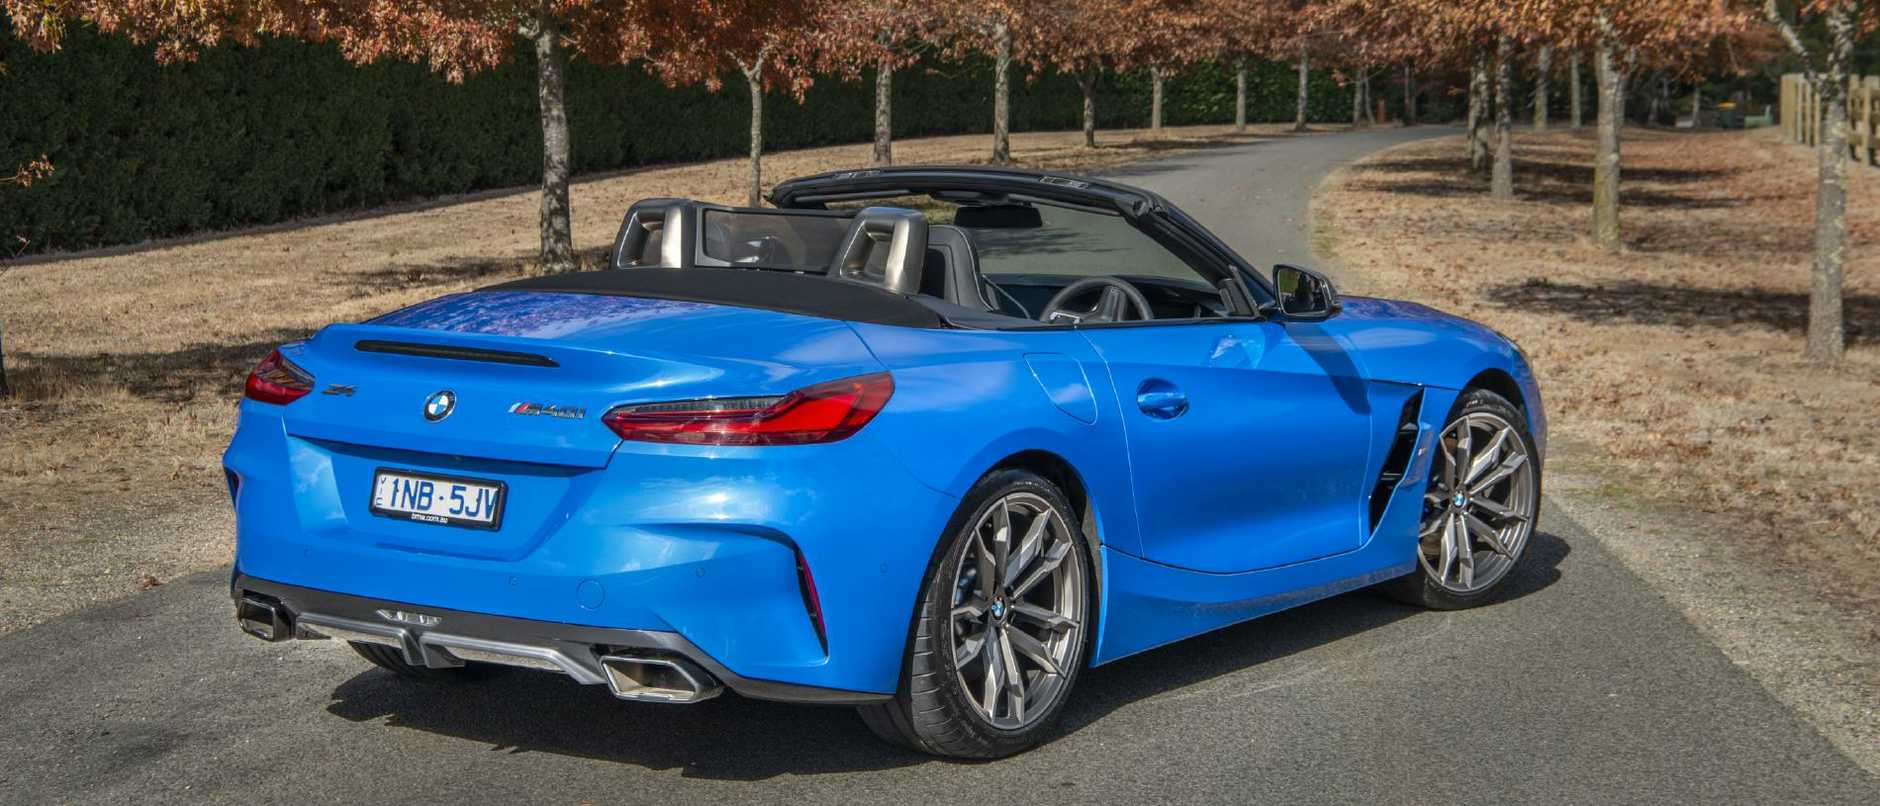 Z4: Eight-speed auto is sole transmission. M40i at $125K adds aural excitement